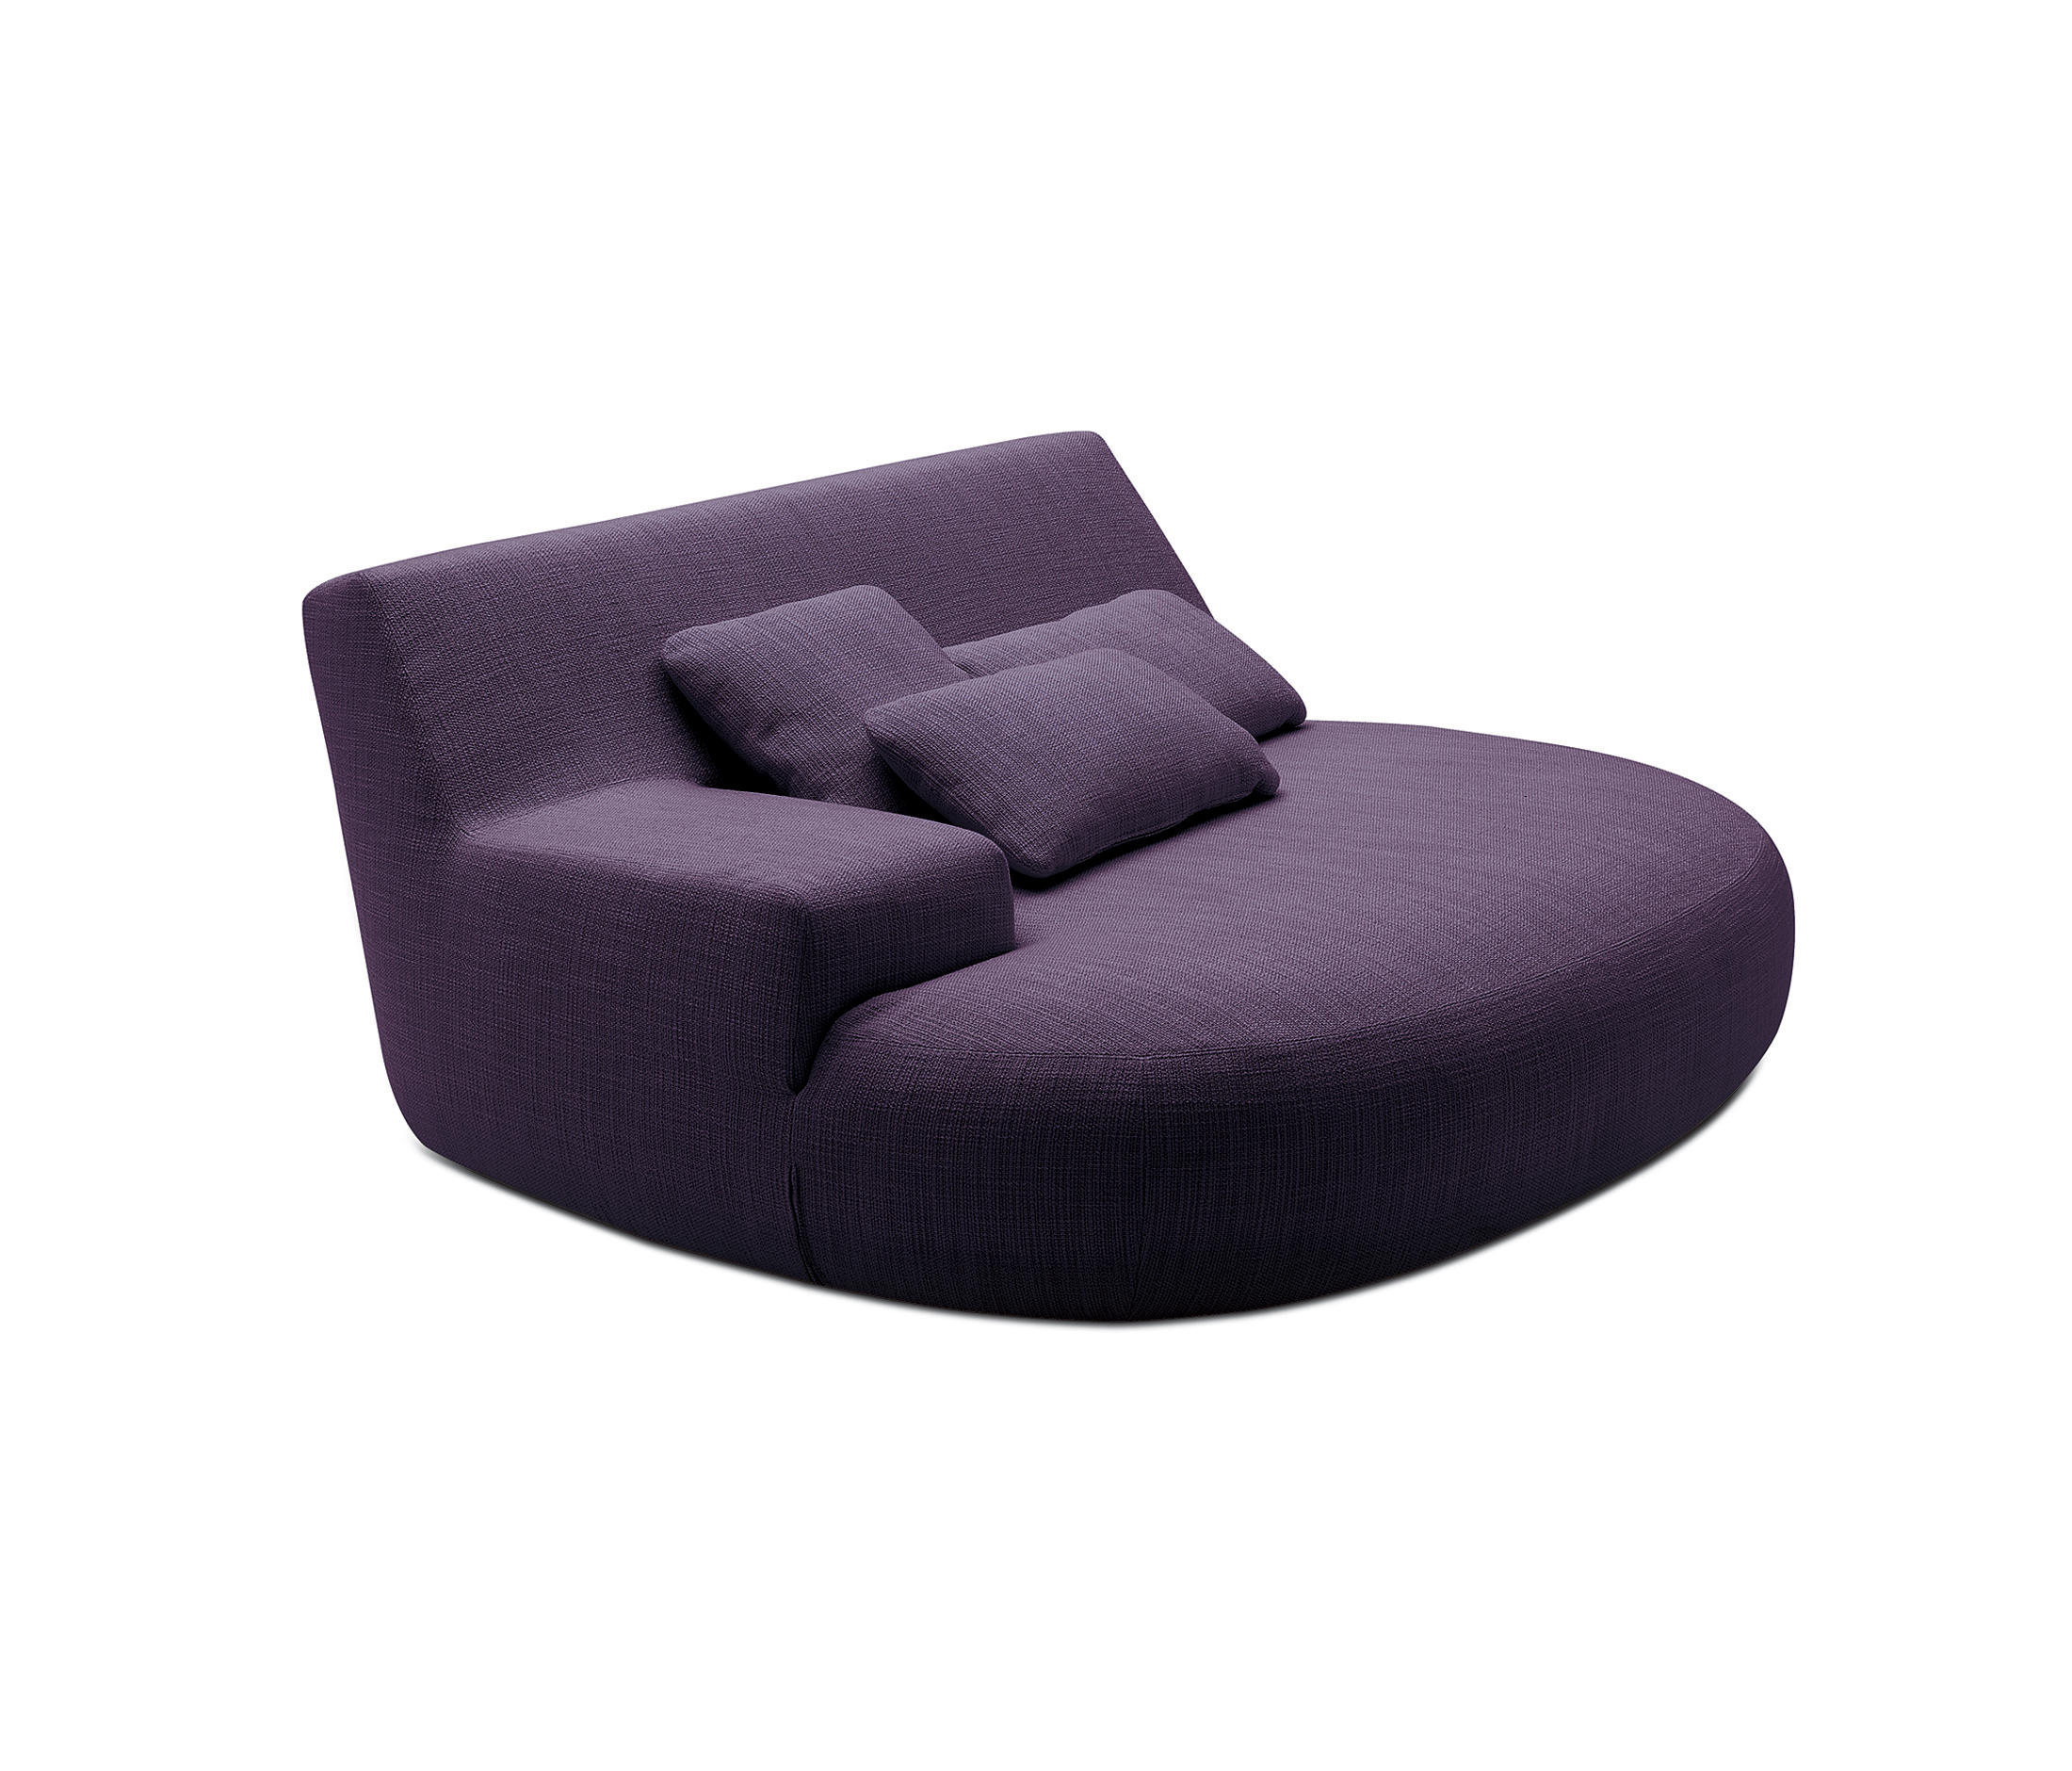 Big Bug Fauteuil De Poliform